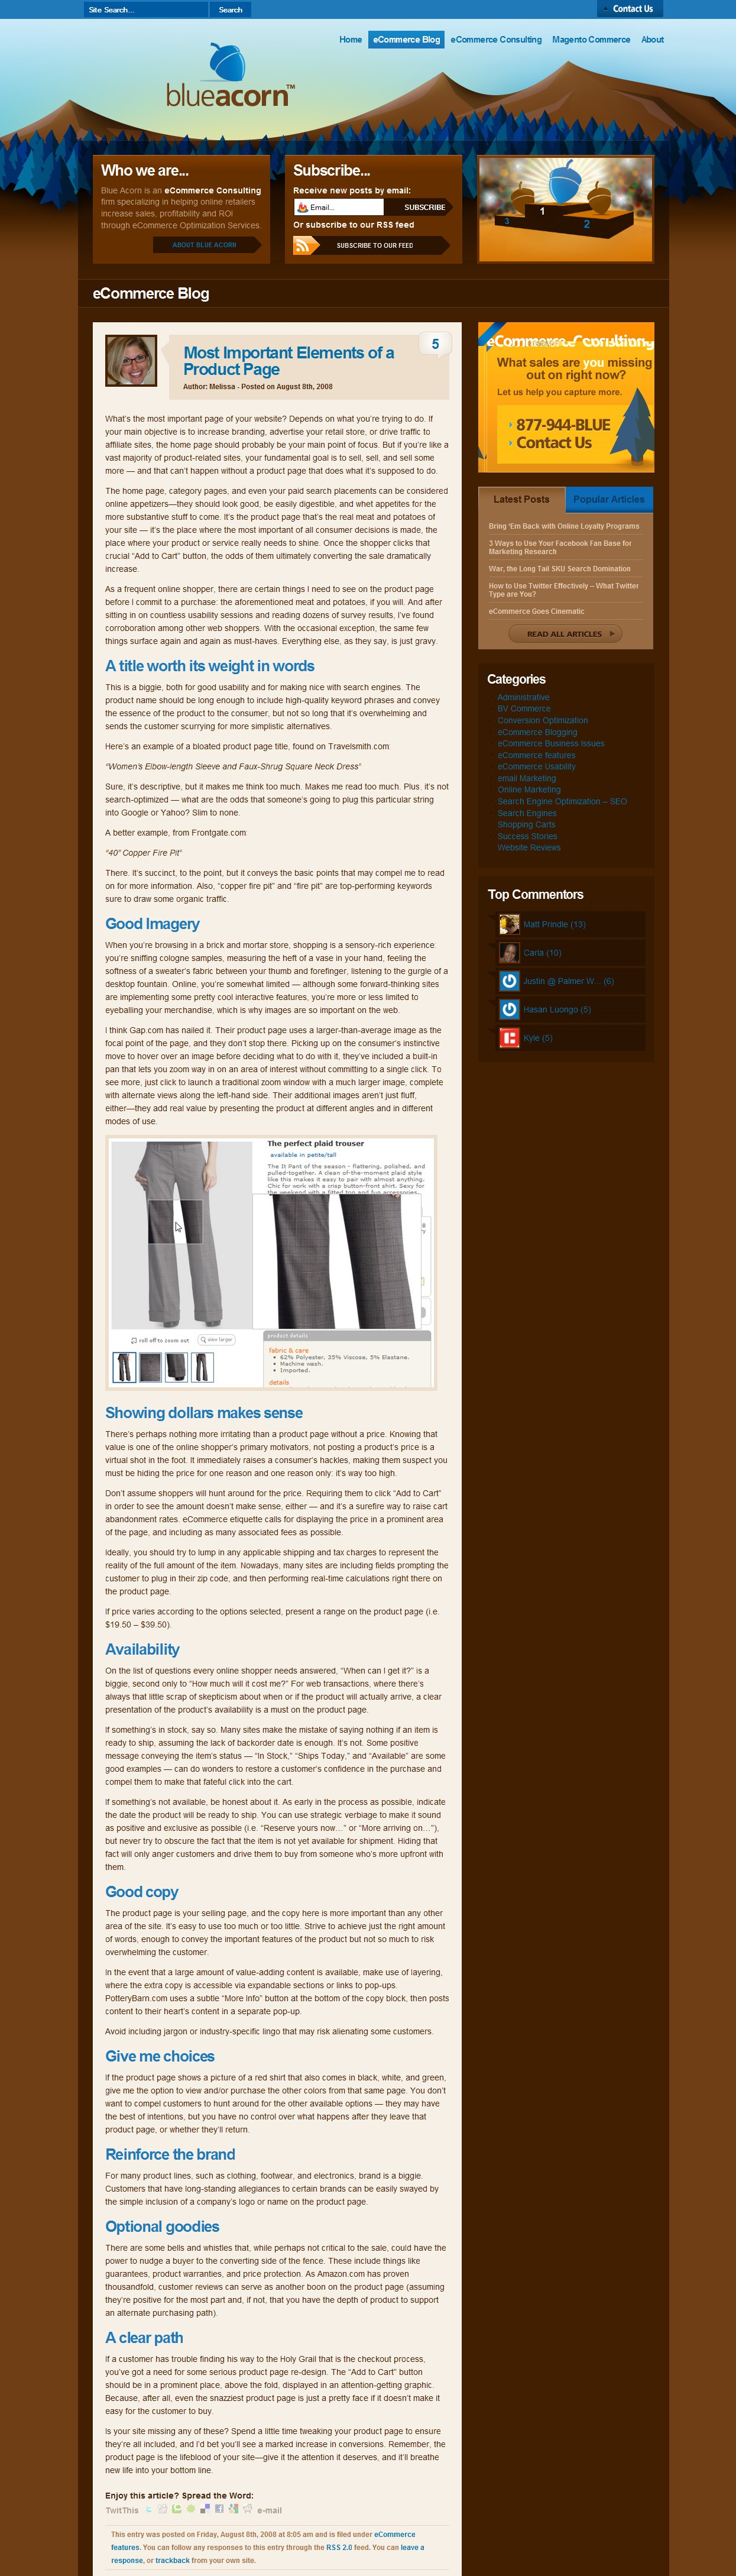 Ecommerce Article: Product Page